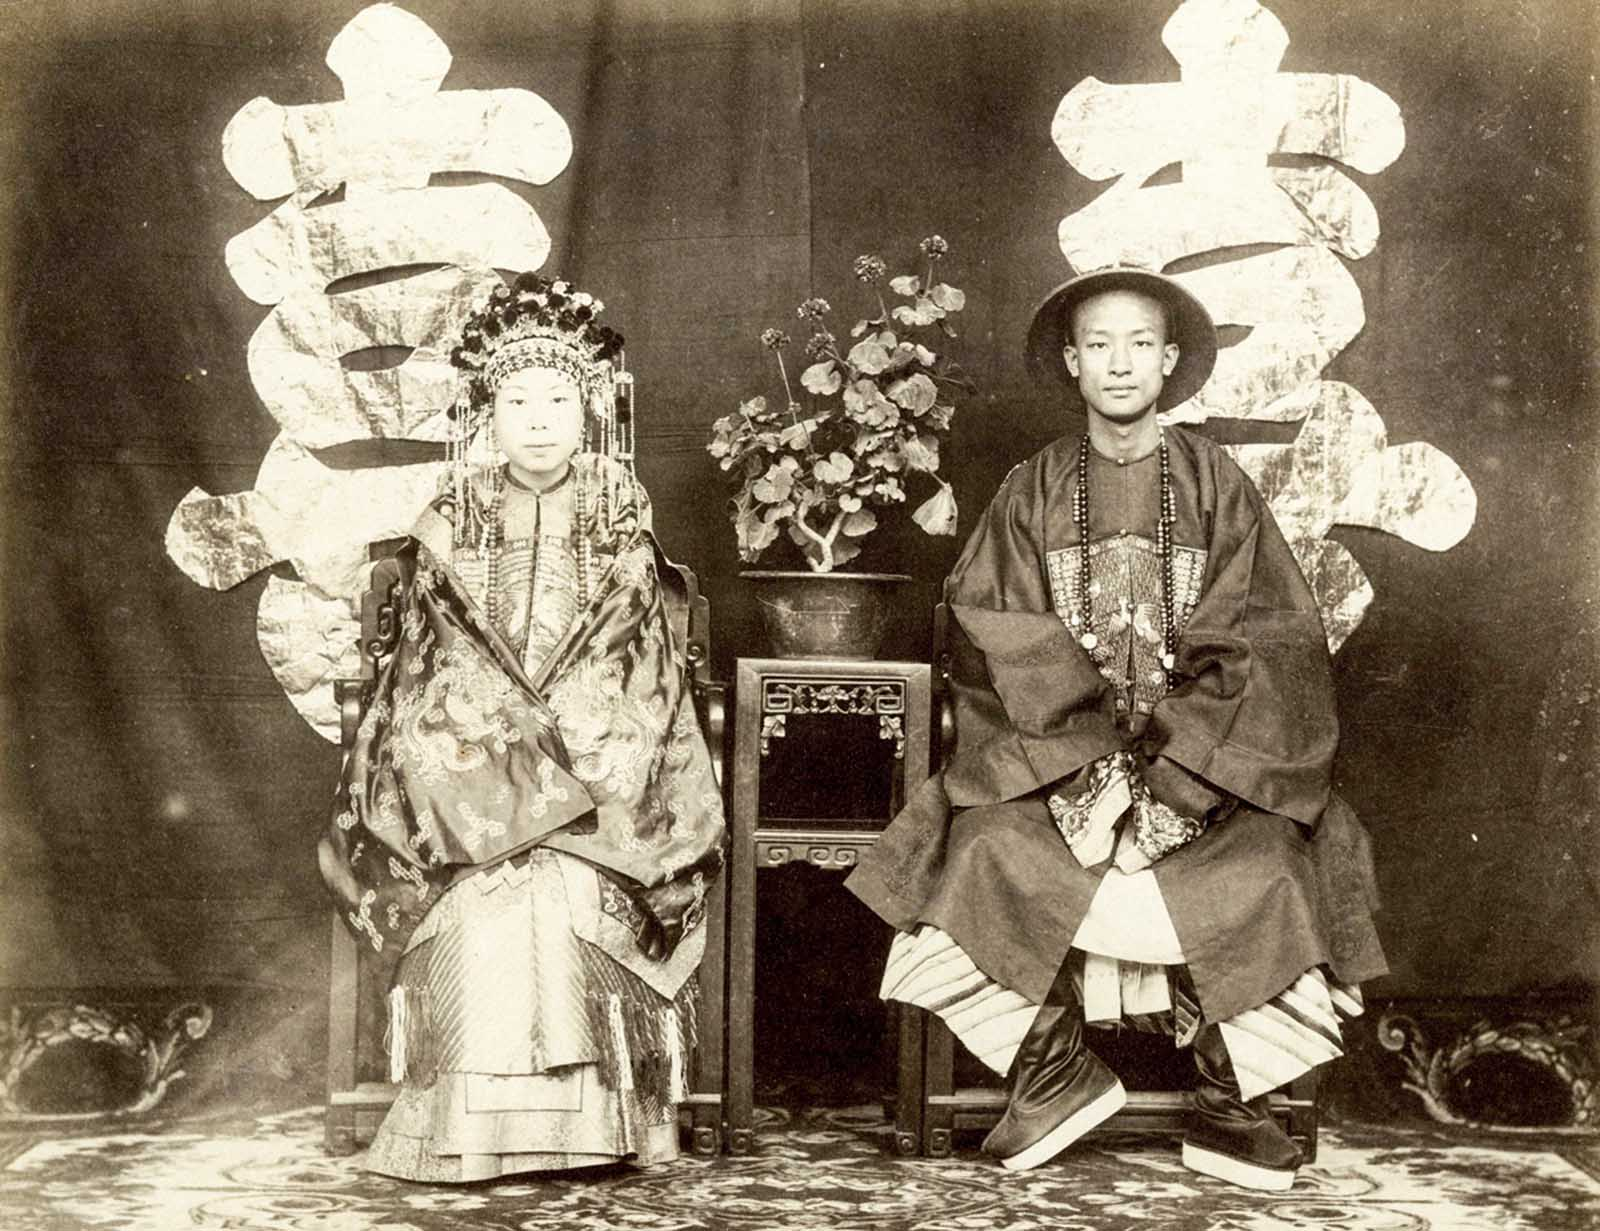 The wedding portrait of Zeng Jifen and Nie ji Gui, who were only recently  identified. The bride is the daughter of Marquis Zeng Guofan, a  high-ranking ...